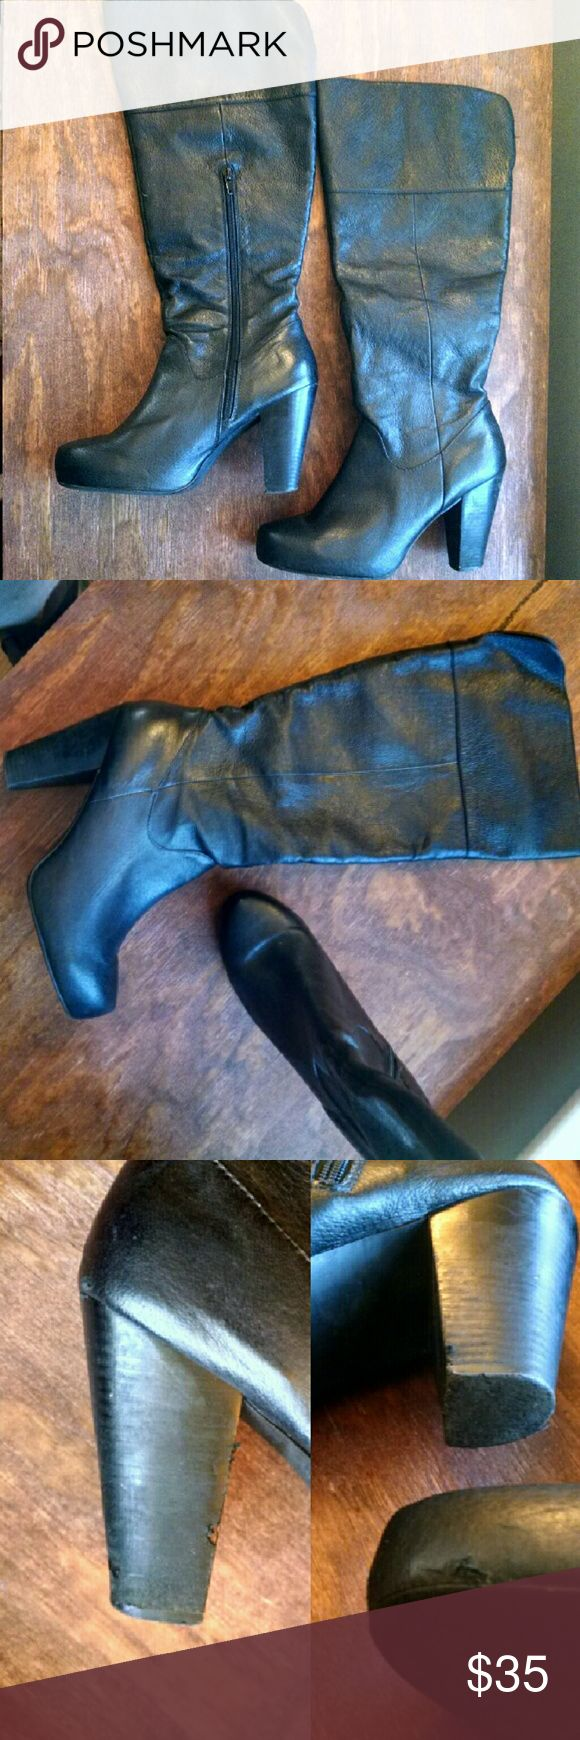 "Steve Madden leather knee high boots Genuine leather Gillis boots. These are really comfy, I just replaced them with a different pair of boots in my wardrobe.  Some damage on heels shown in pics.  - Partial side zip closure - Top split shaft at back - Stacked heel - Hidden platform - Approx. 16"" shaft height, 16"" opening circumference - Approx. 4"" heel, 0.75"" platform - Imported Steve Madden Shoes Heeled Boots"